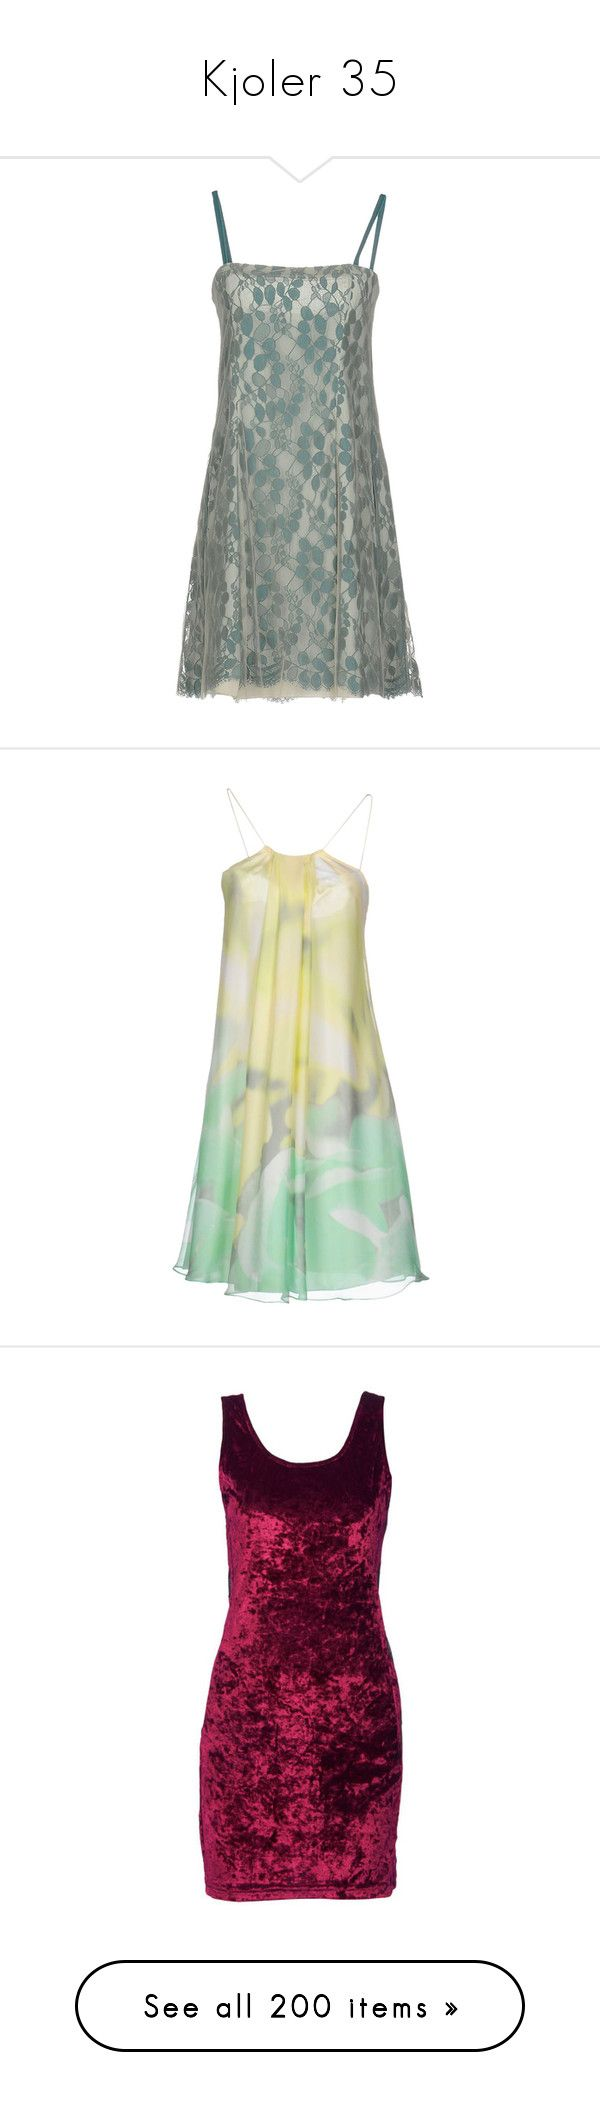 """Kjoler 35"" by sissesofiemark ❤ liked on Polyvore featuring dresses, deep jade, short green dress, short lace dress, green dress, print dress, green sleeveless dress, light yellow, short chiffon dress and trapeze dress"